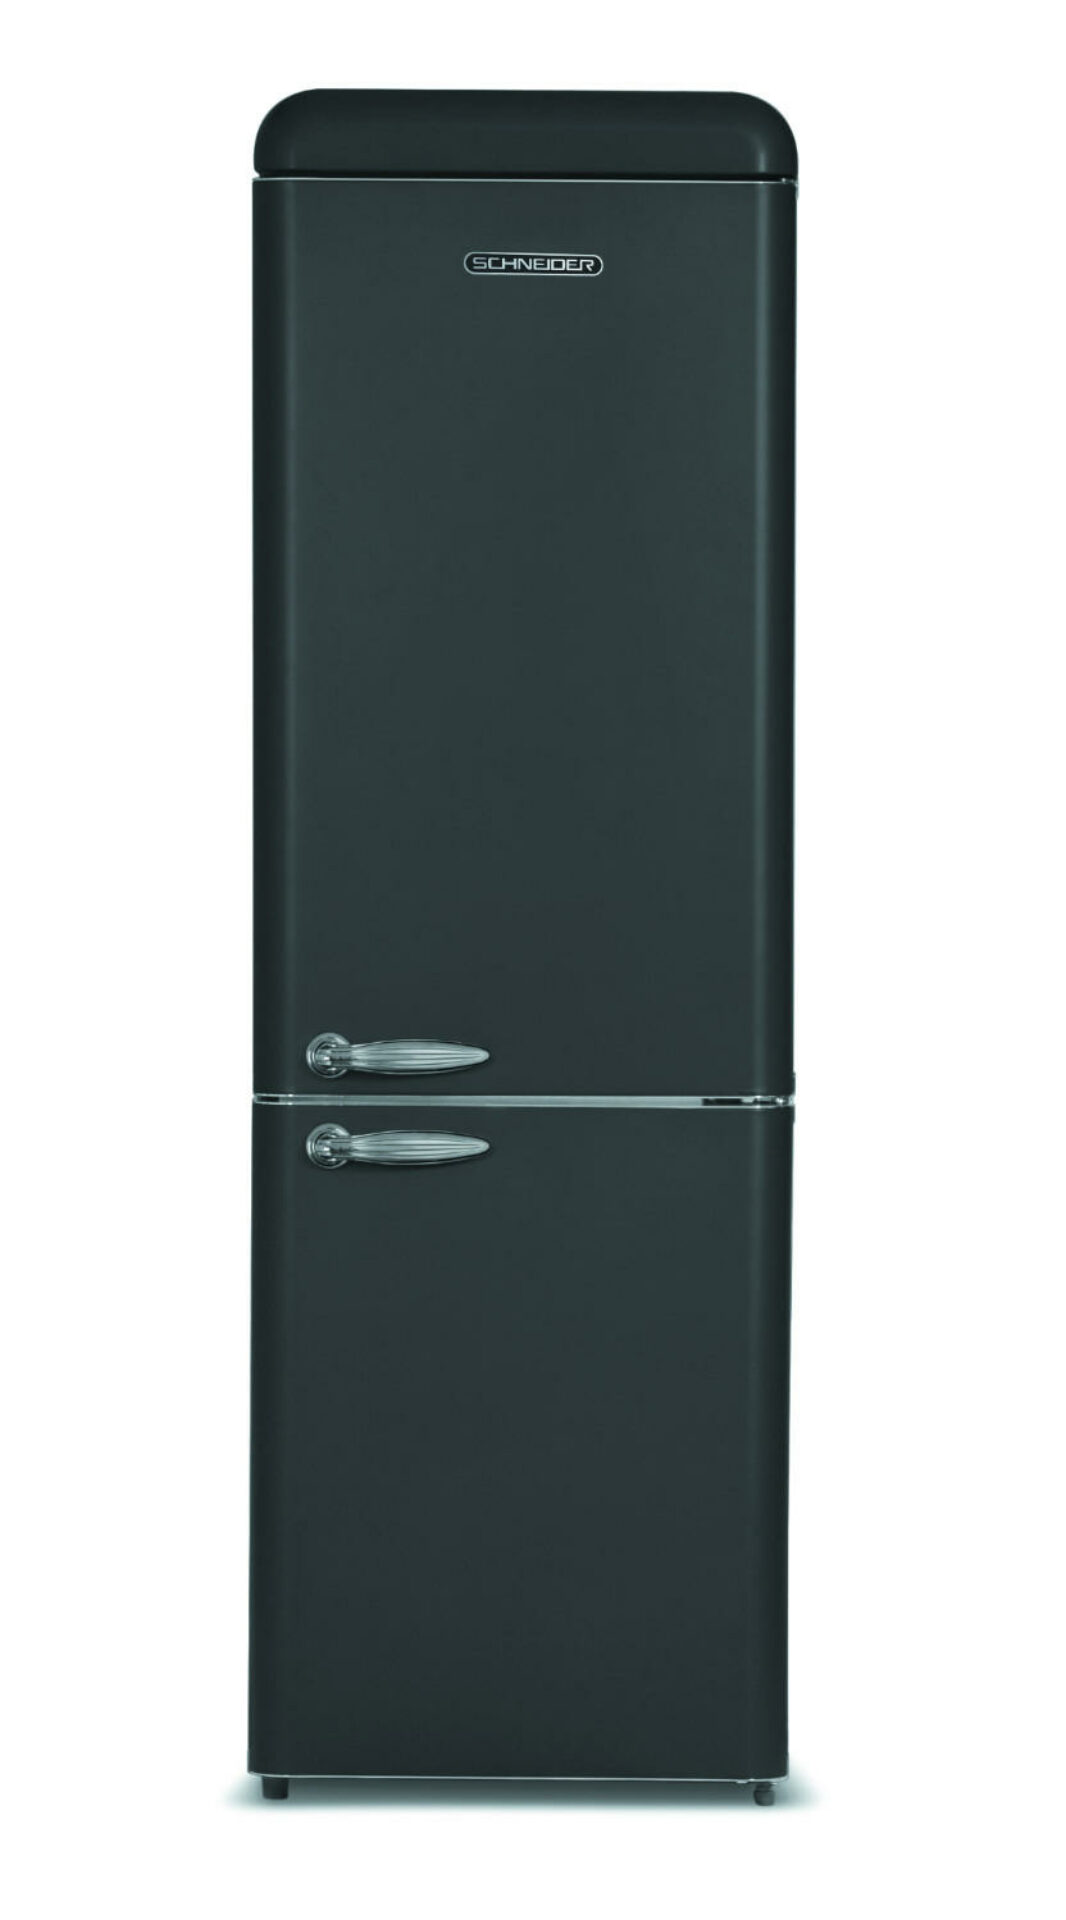 Combined refrigerator in vintage black matte with No Frost technology - Schneider